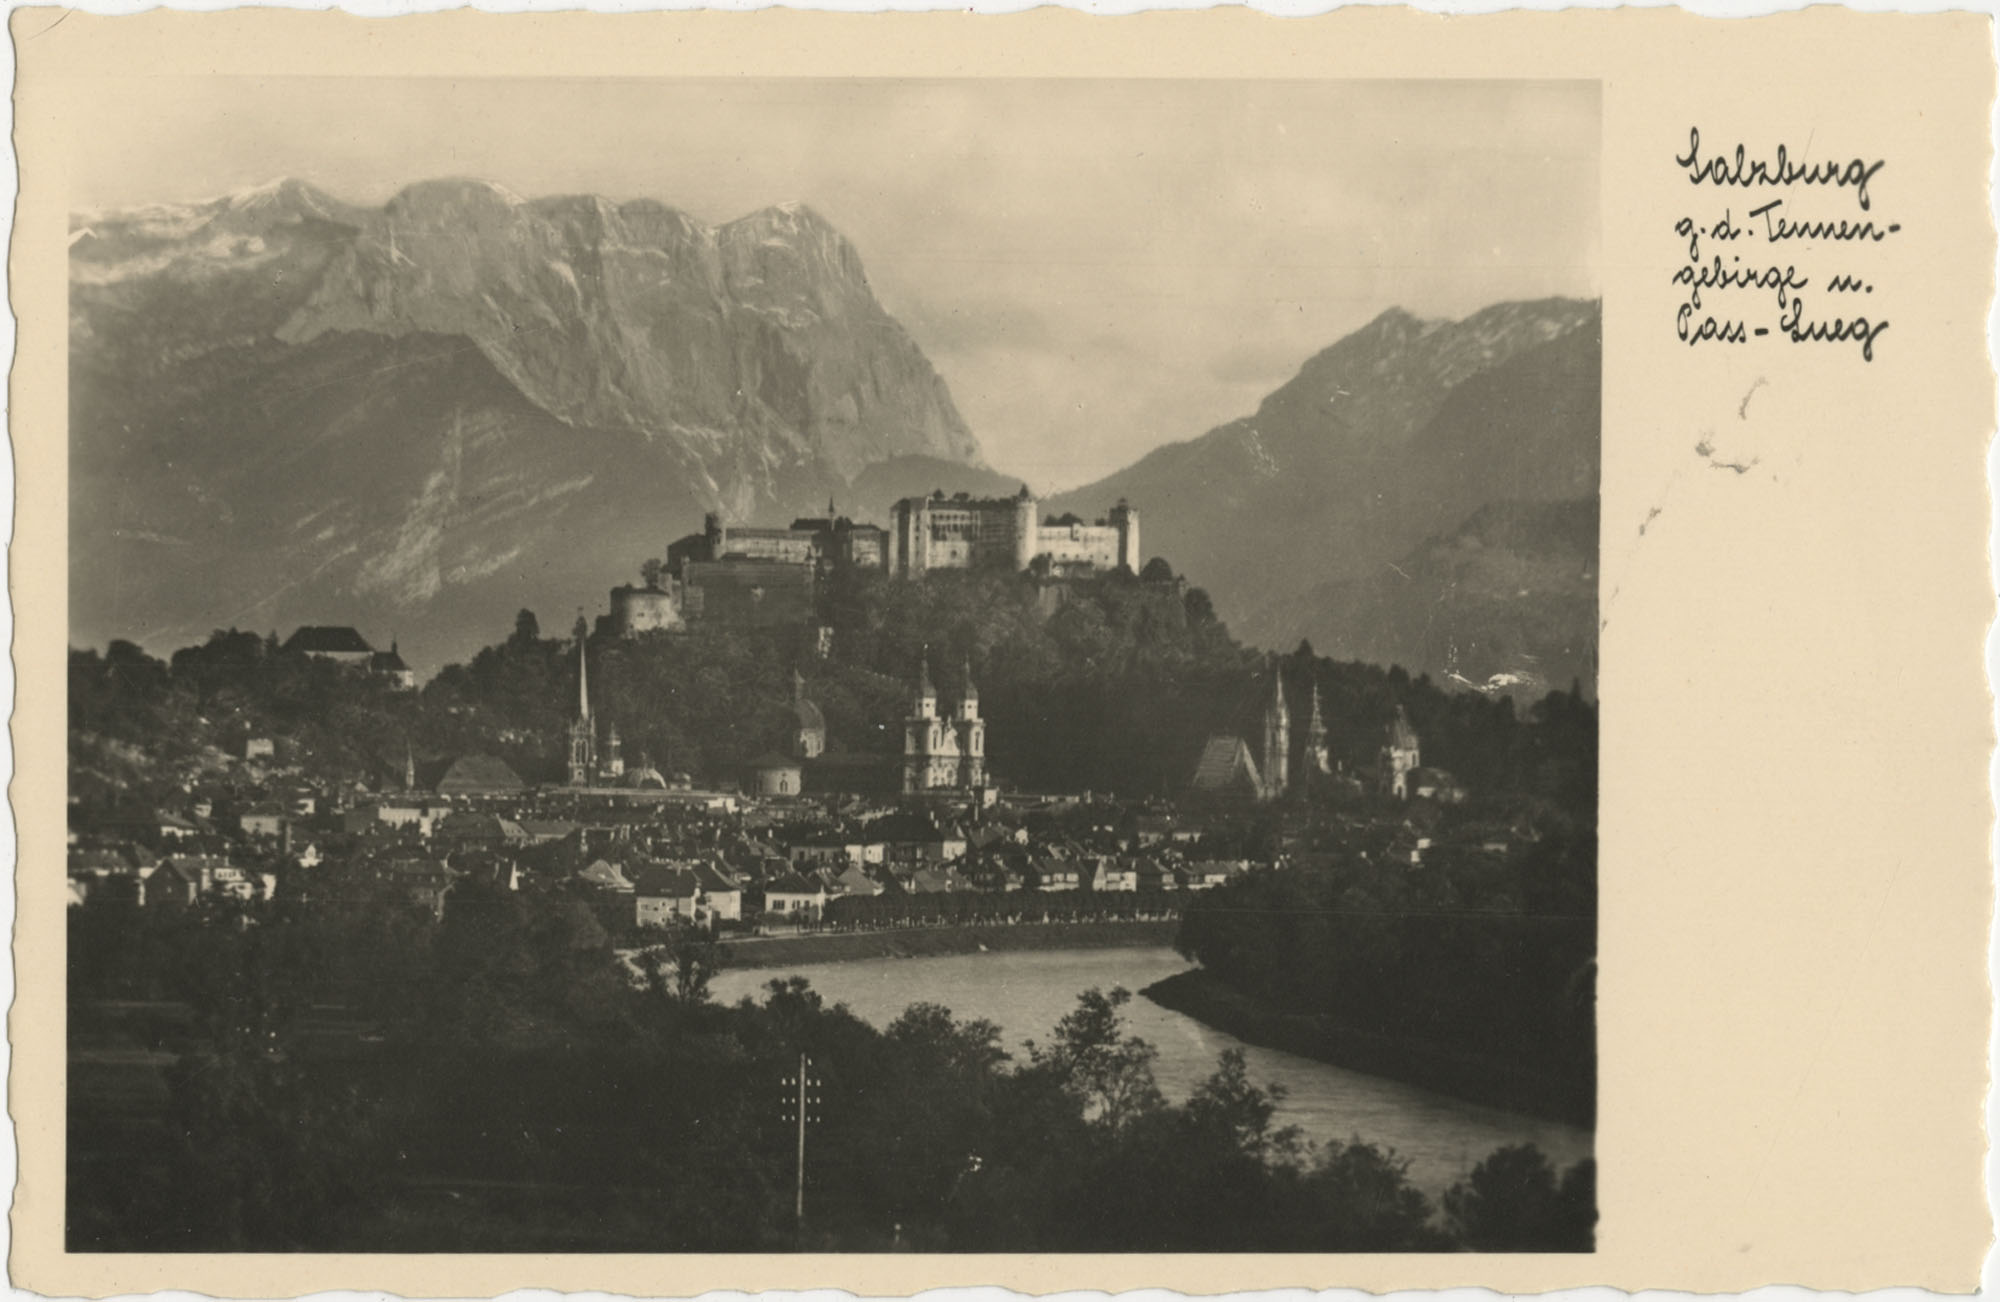 Mirabell Palace in Salzburg, Austria, Photograph 1